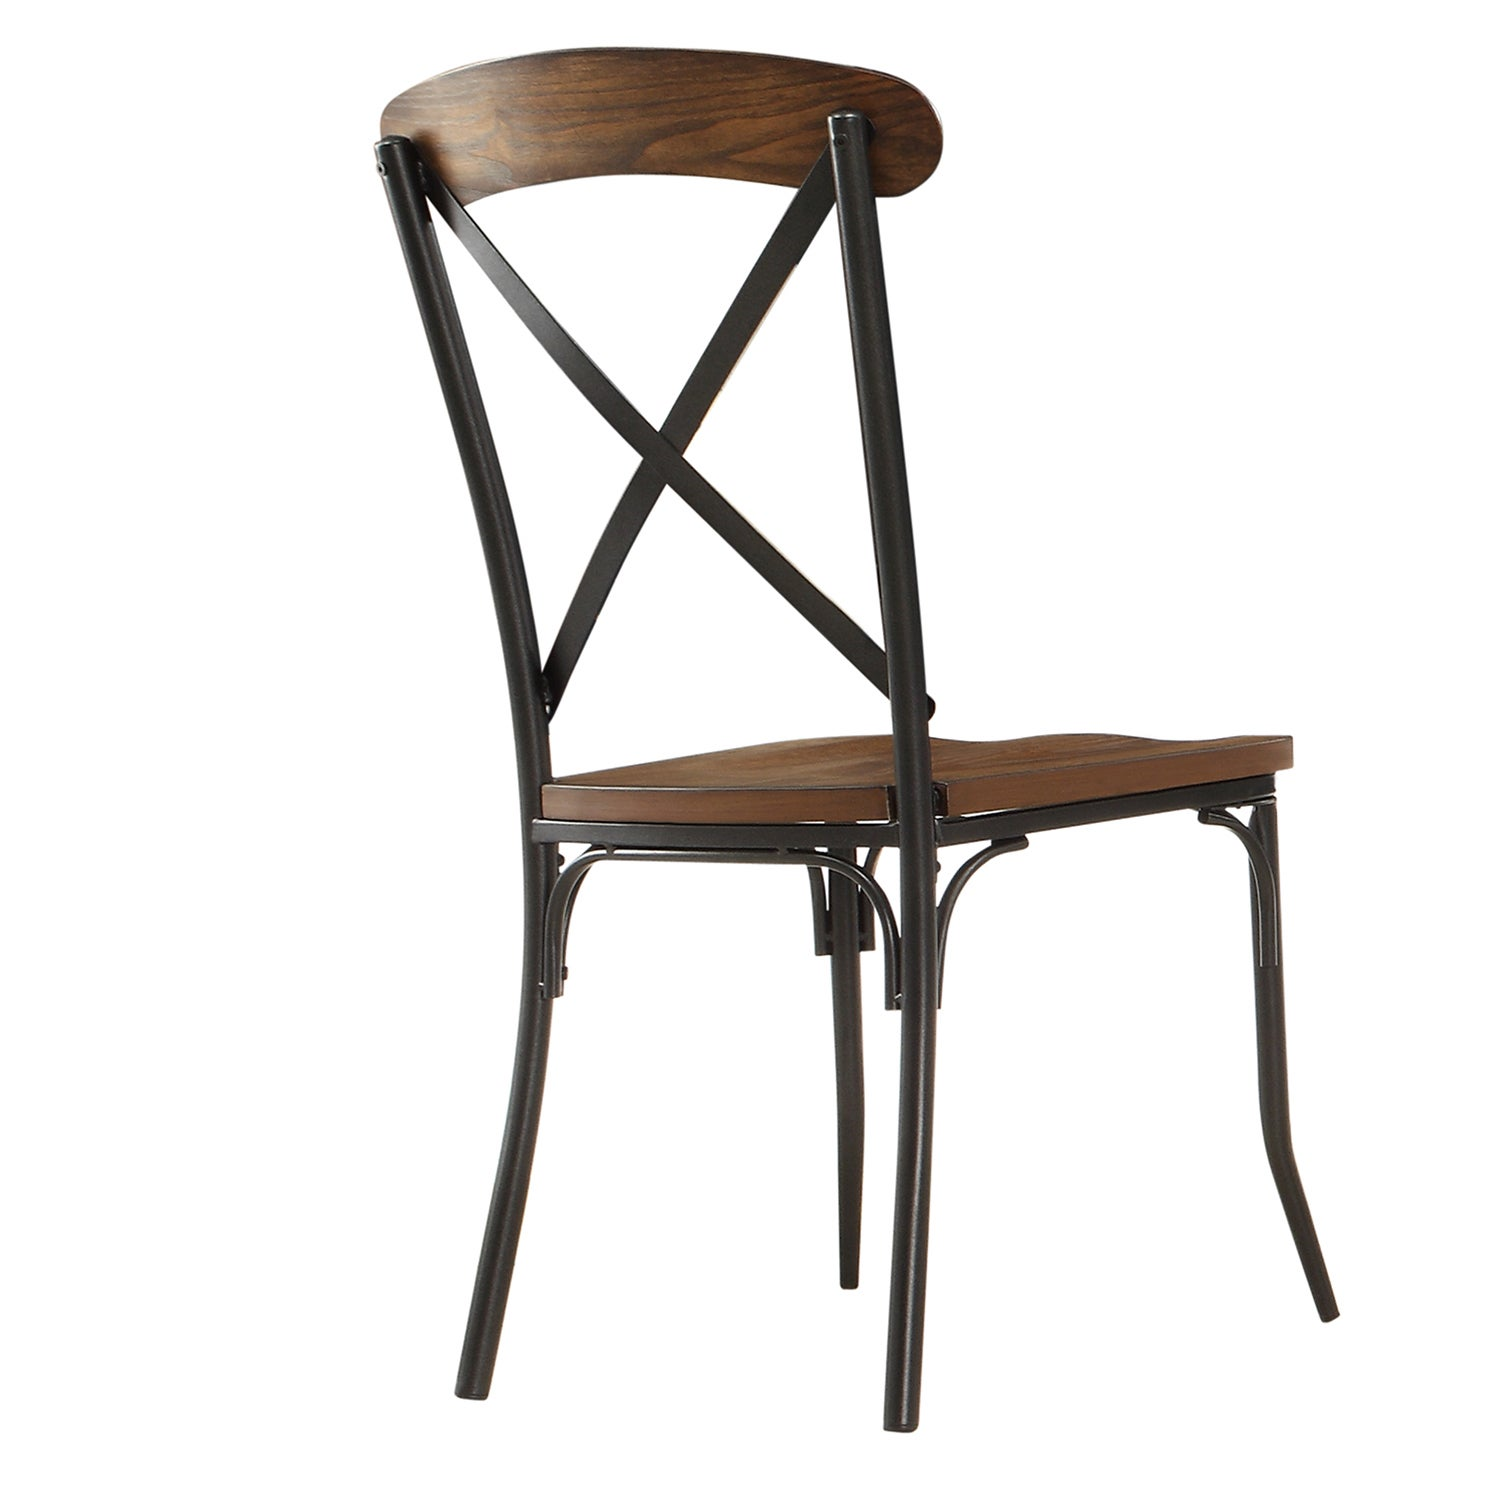 Nelson Industrial Modern Rustic Cross Back Dining Chair By INSPIRE Q  Classic (Set Of 2)   Free Shipping Today   Overstock.com   16023681